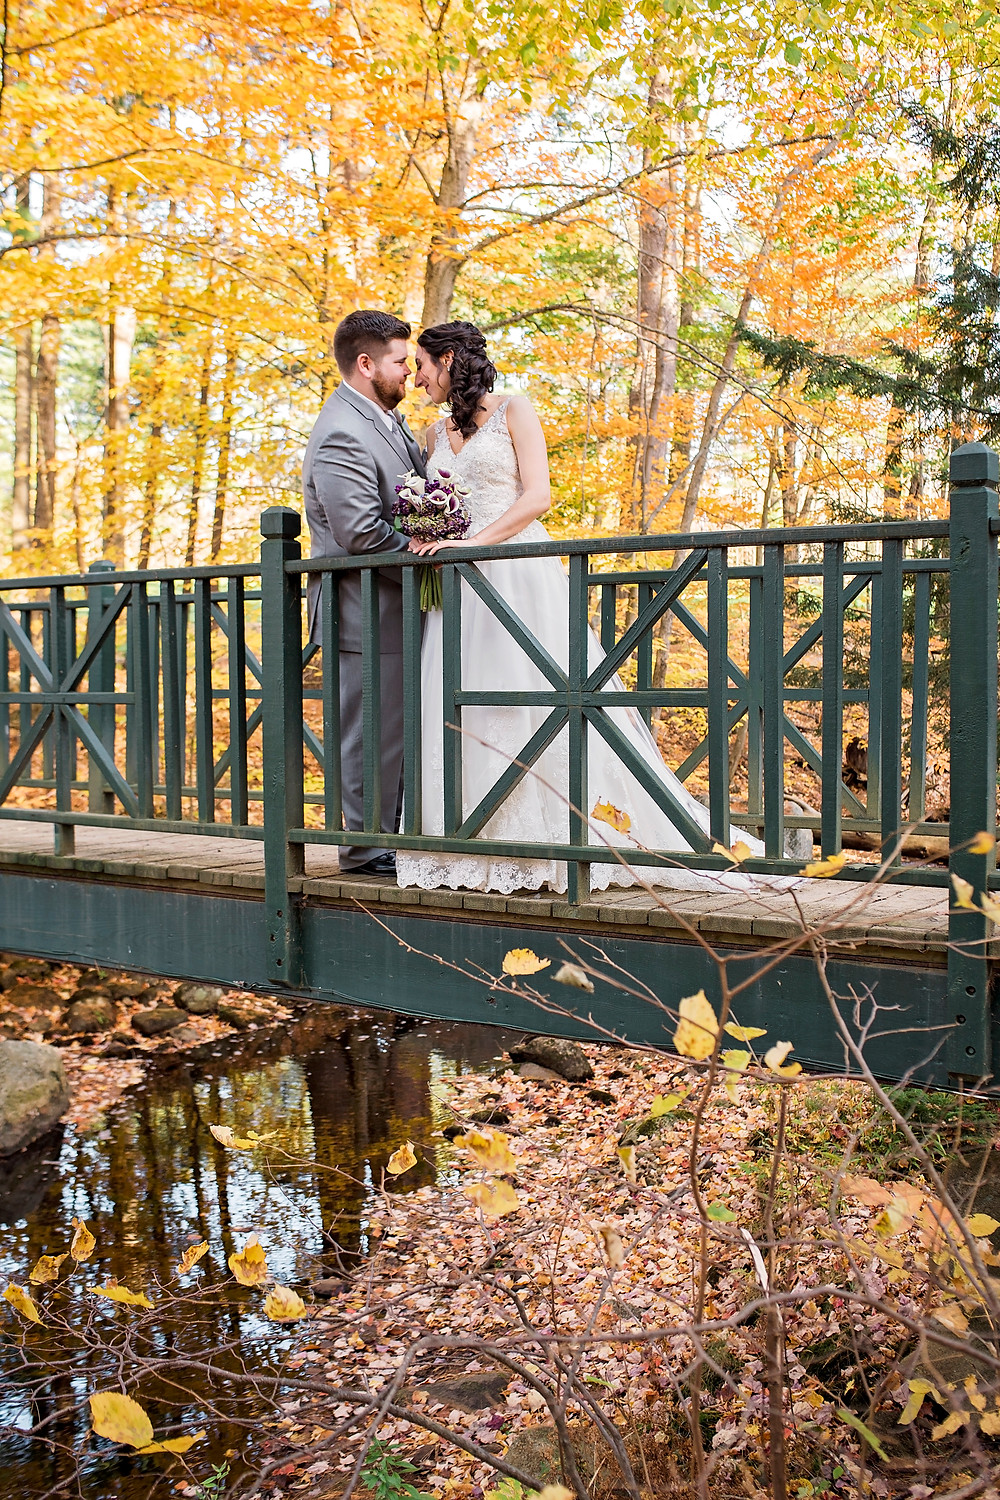 maine weddings have beautiful fall foliage with bride and groom